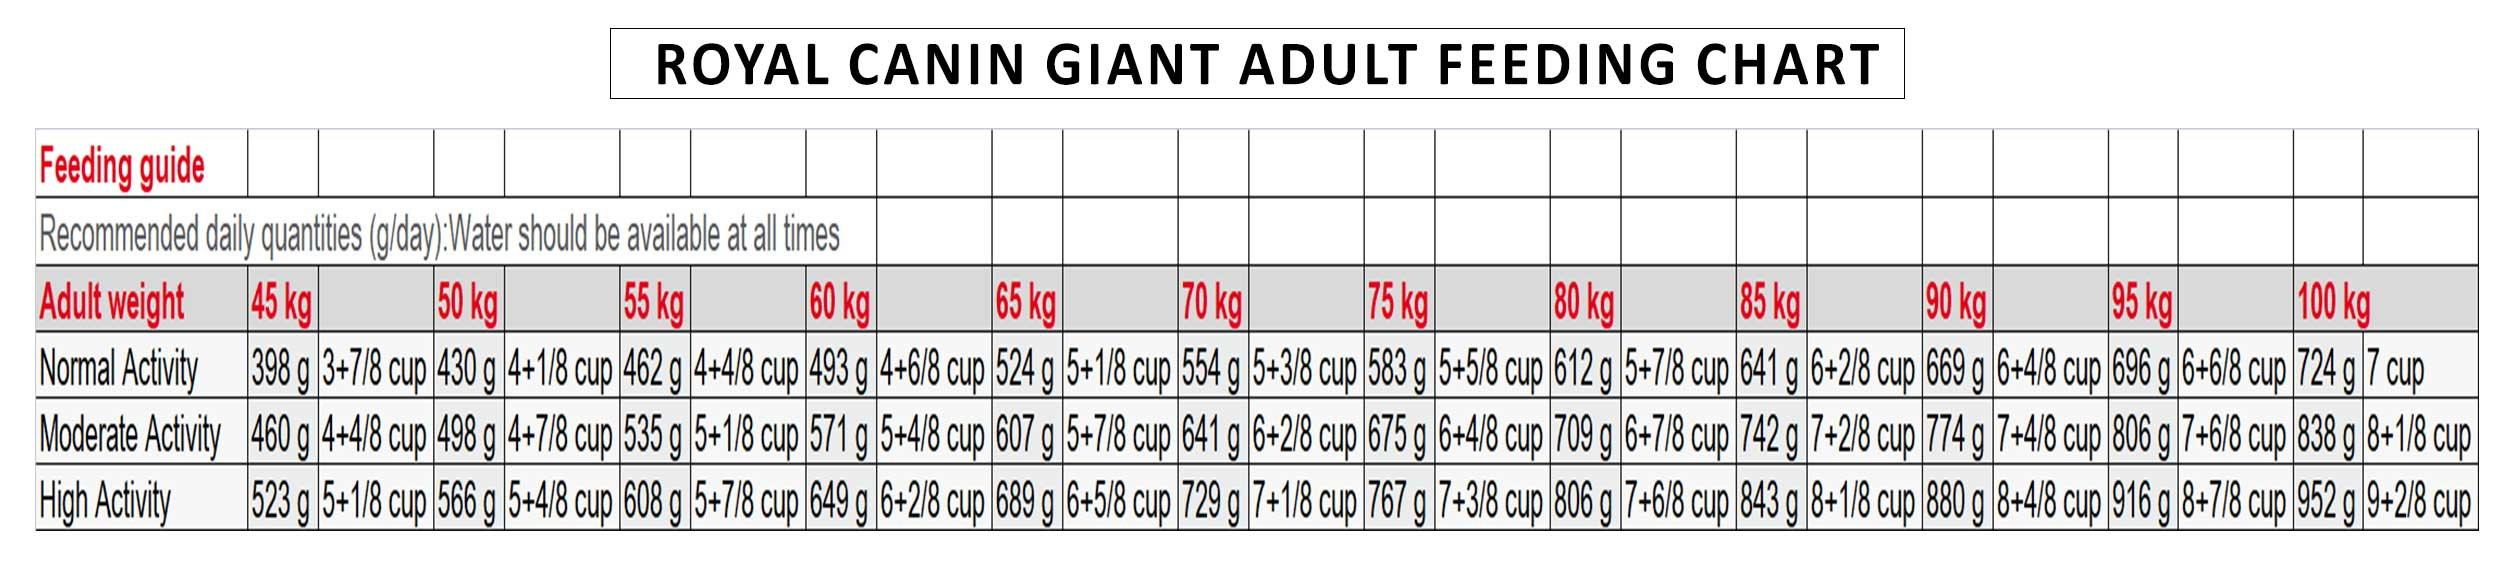 Royal-canin-Giant-Adult-feeding-chart